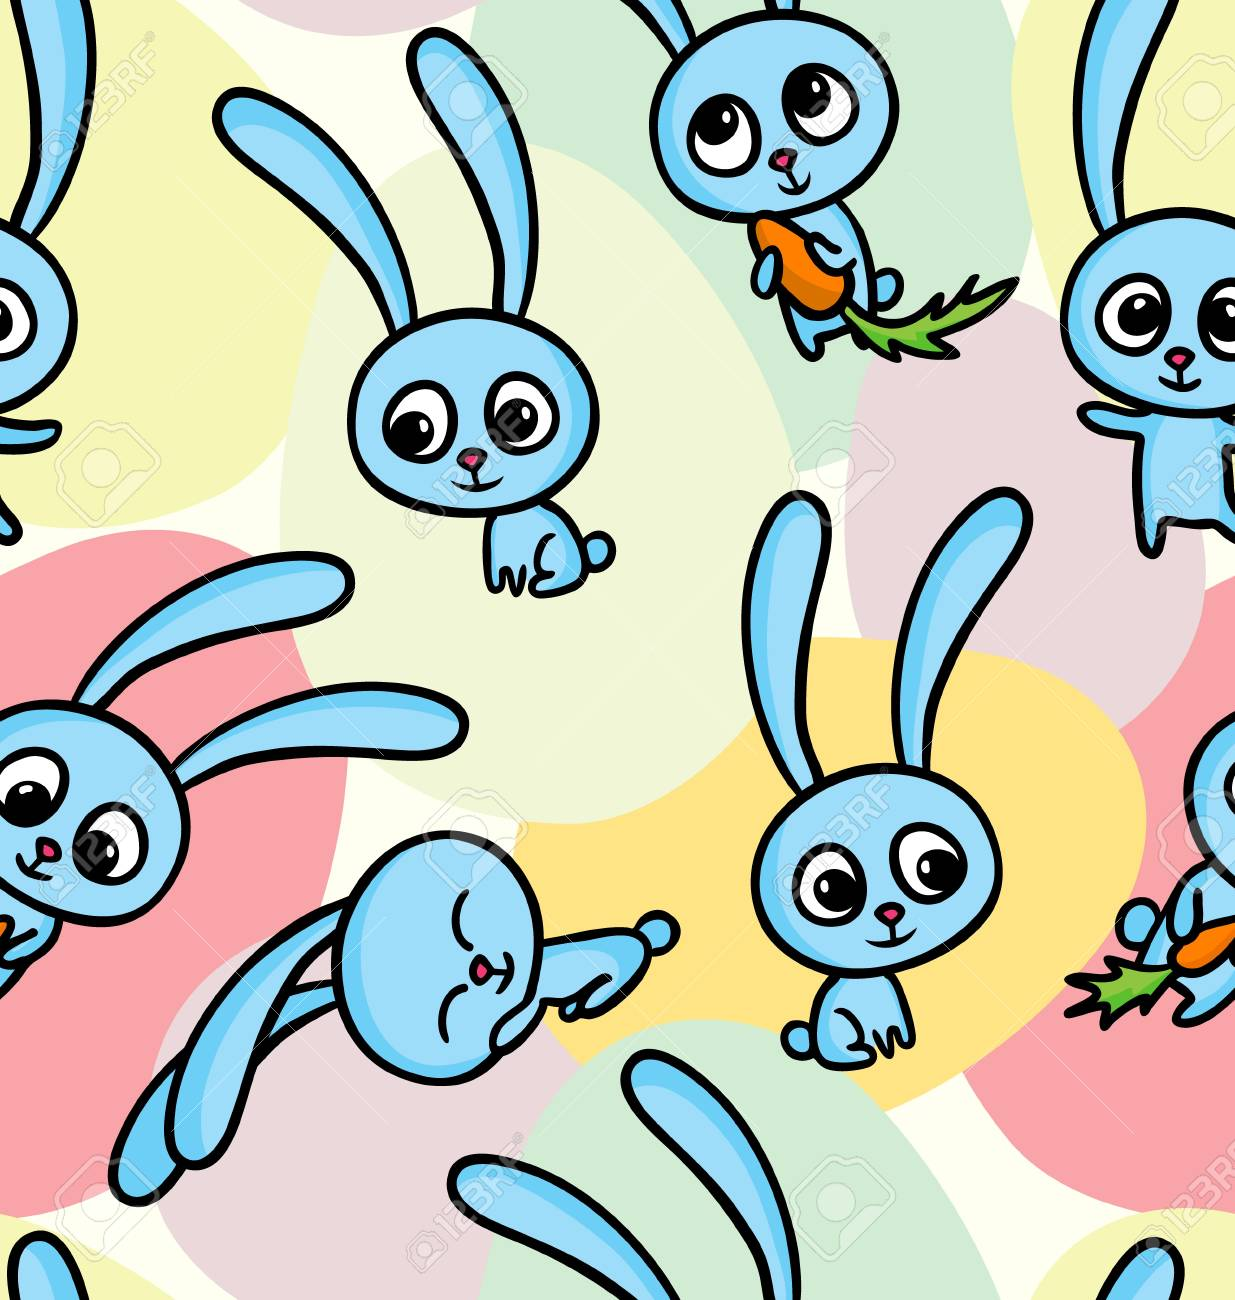 Vector illustration of happy easter bunnies on seamless pattern background Stock Vector - 18798433